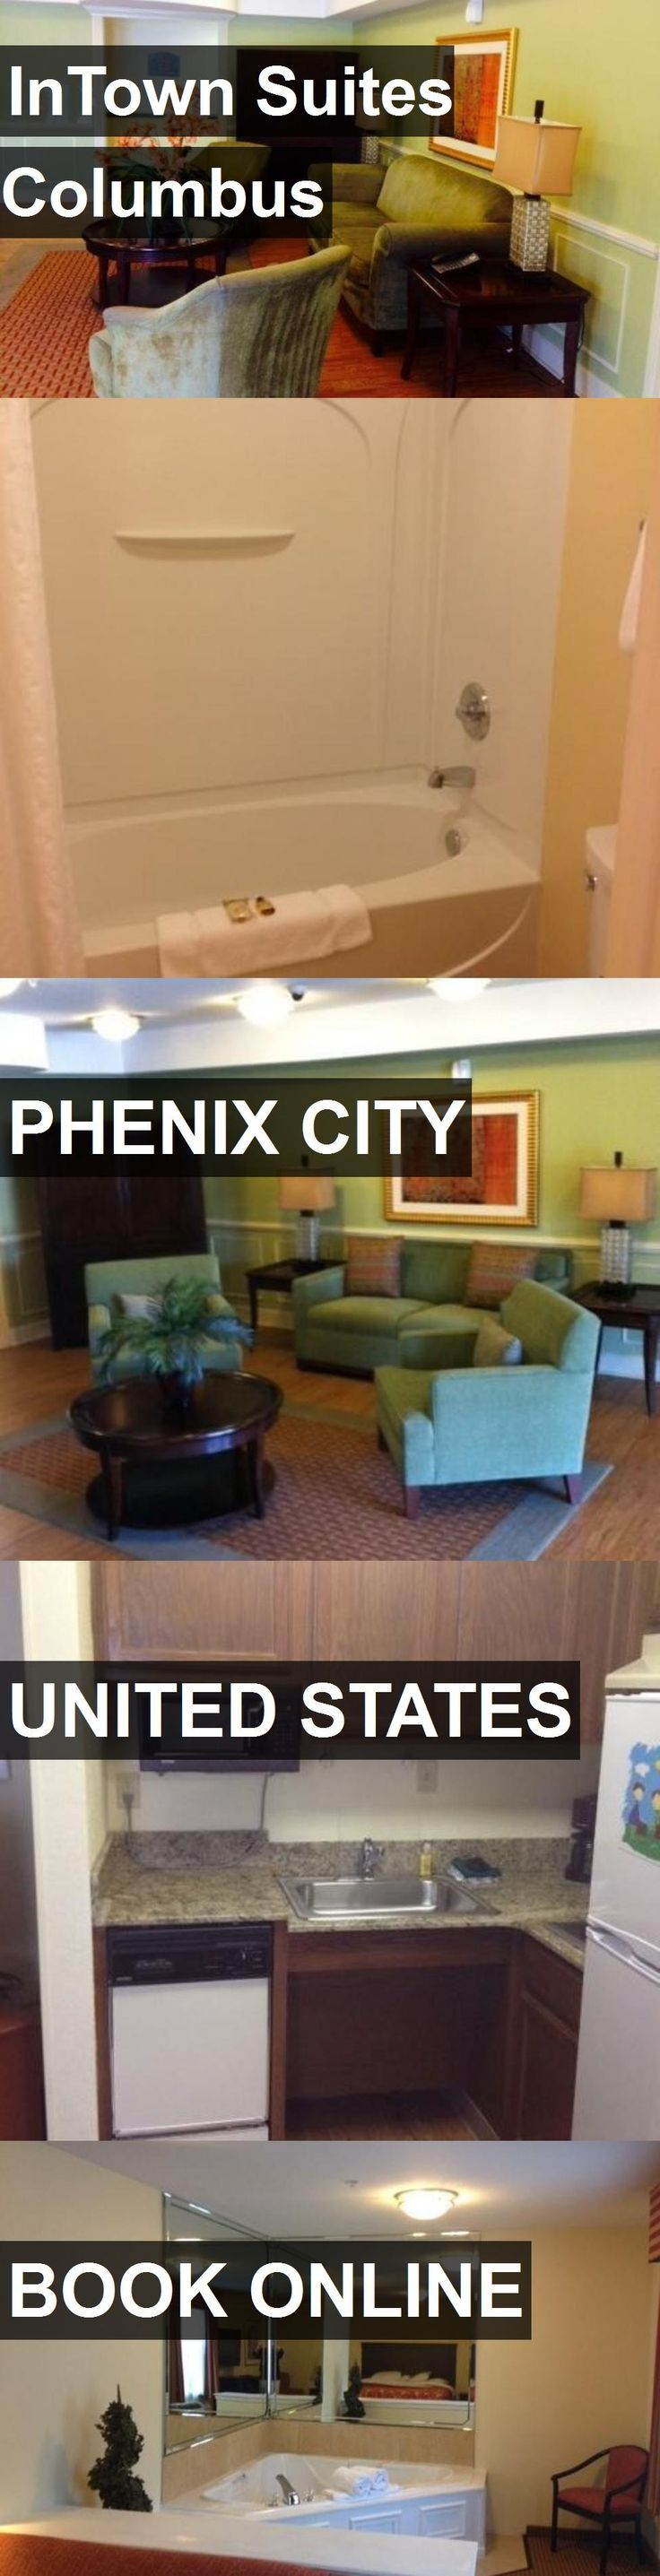 Hotel InTown Suites Columbus in Phenix City, United States. For more information, photos, reviews and best prices please follow the link. #UnitedStates #PhenixCity #InTownSuitesColumbus #hotel #travel #vacation